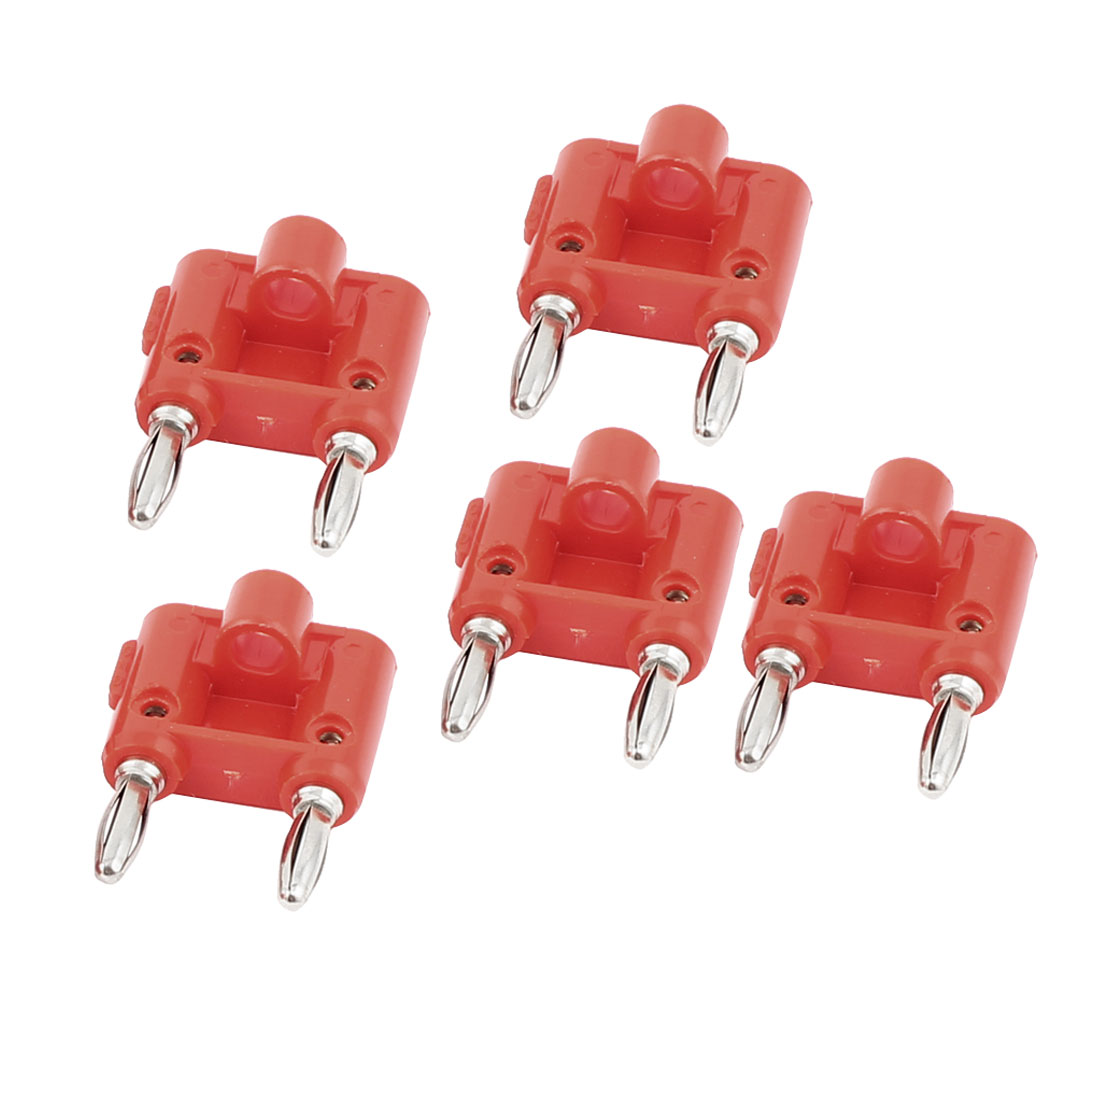 5pcs Red Silver Tone 4mm Wire Cable Dual Port Banana Male Adapter Audio Jack Connectors for Speaker Amplifier Binding Post Test Probes